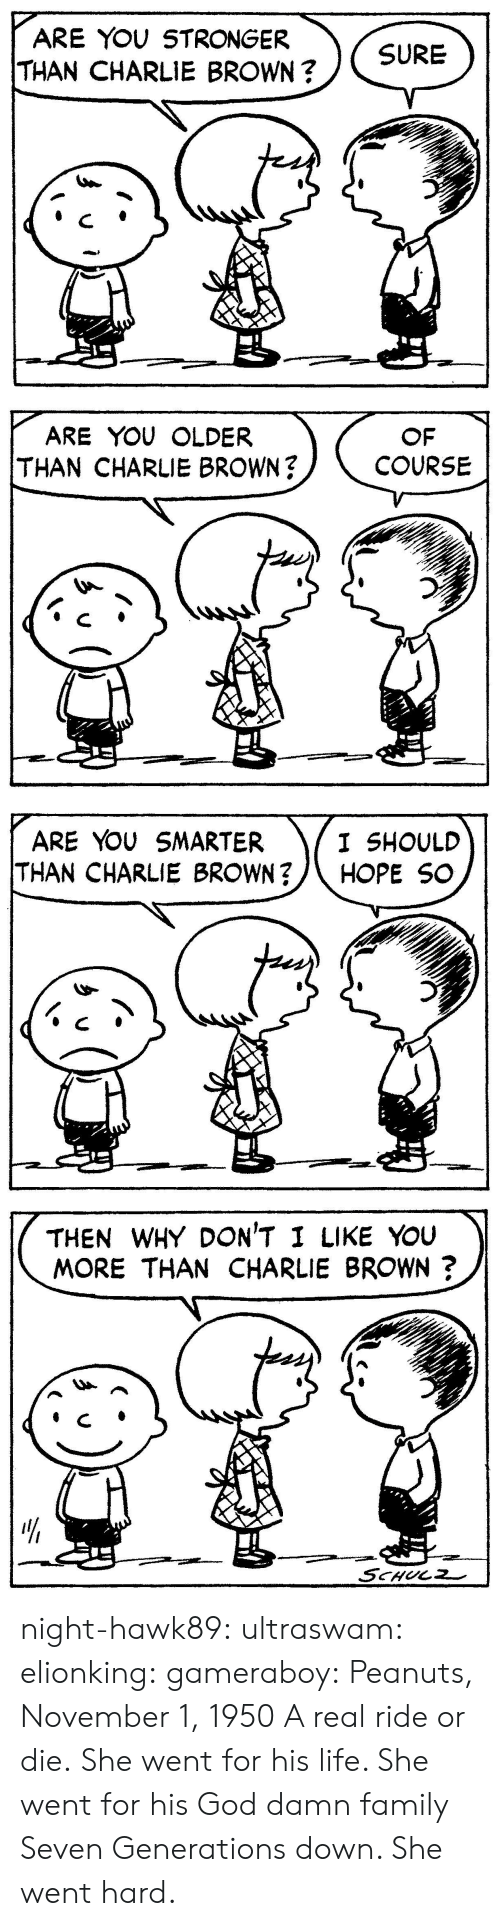 charlie brown: ARE YOU STRONGER  THAN CHARLIE BROWN?  SURE   ARE YOU OLDER  THAN CHARLIE BROWN?  OF  COURSE   ARE YOU SMARTER  THAN CHARLIE BROWN?/\ HOPE SC  I SHOULD   THEN WHY DON'T I LIKE YouU  MORE THAN CHARLIE BROWN?  リ  4  せー night-hawk89:  ultraswam:  elionking:  gameraboy:  Peanuts, November 1, 1950     A real ride or die.   She went for his life. She went for his God damn family Seven Generations down. She went hard.